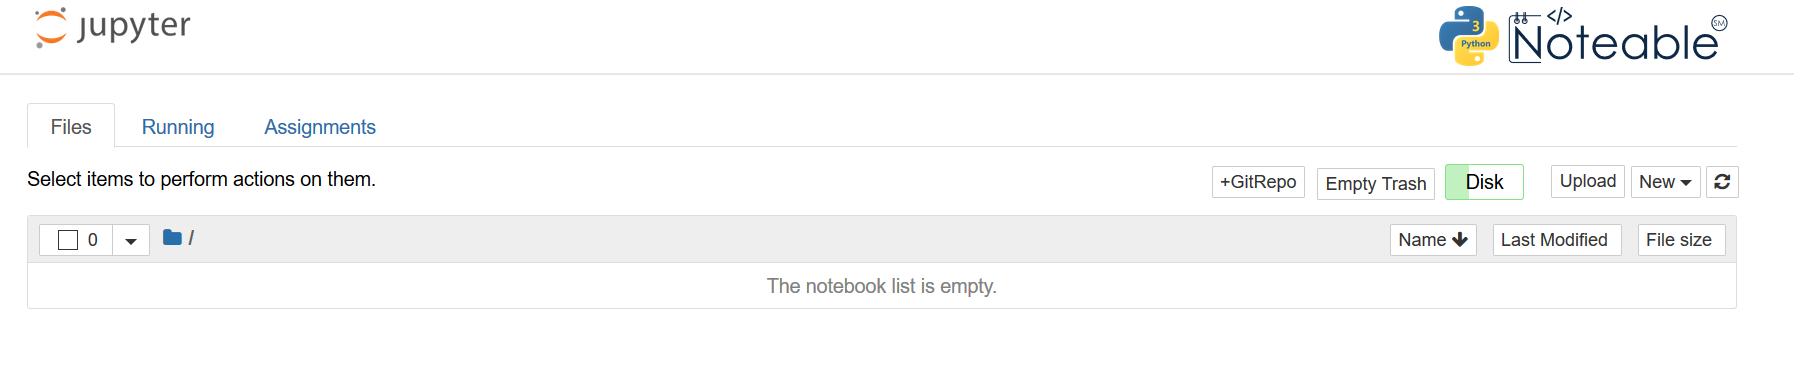 Screenshot of Noteable's launch page after starting up a notebook server